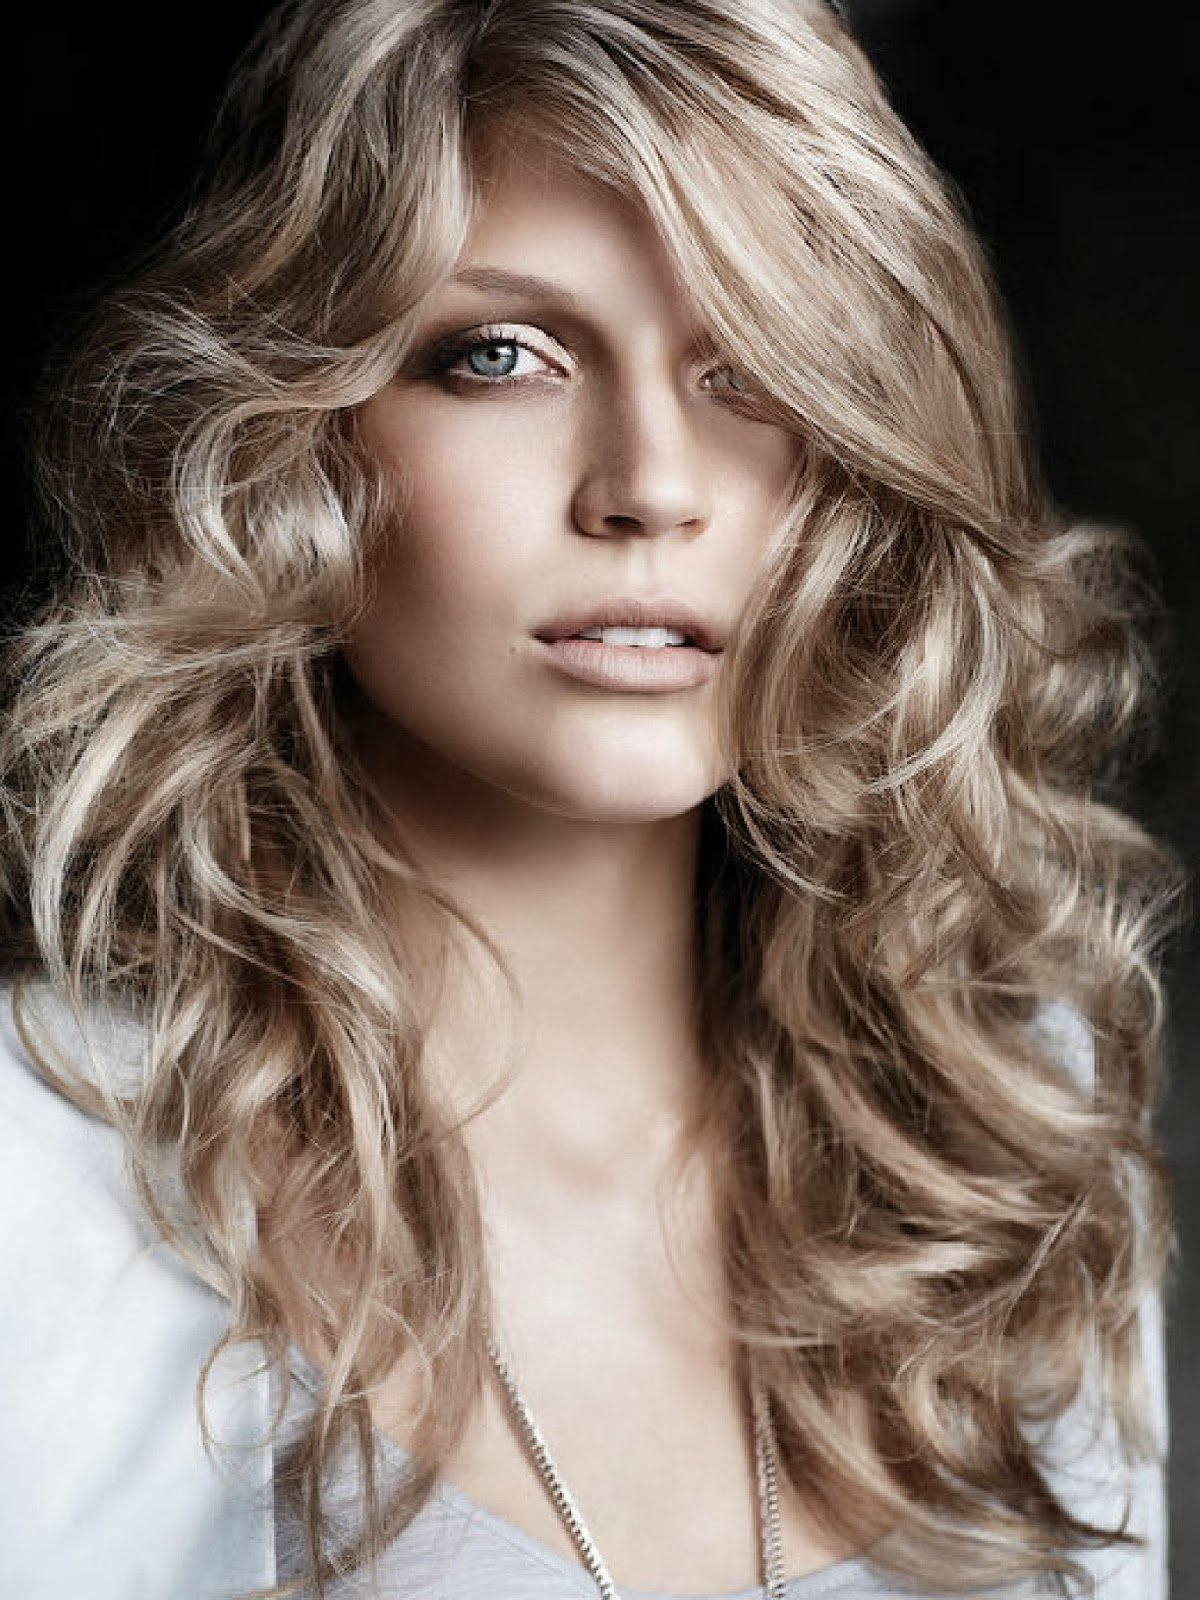 The Best Hairstyles For Long Hair Women Pinterest Hair Fashion Style Color Styles Cuts Pictures